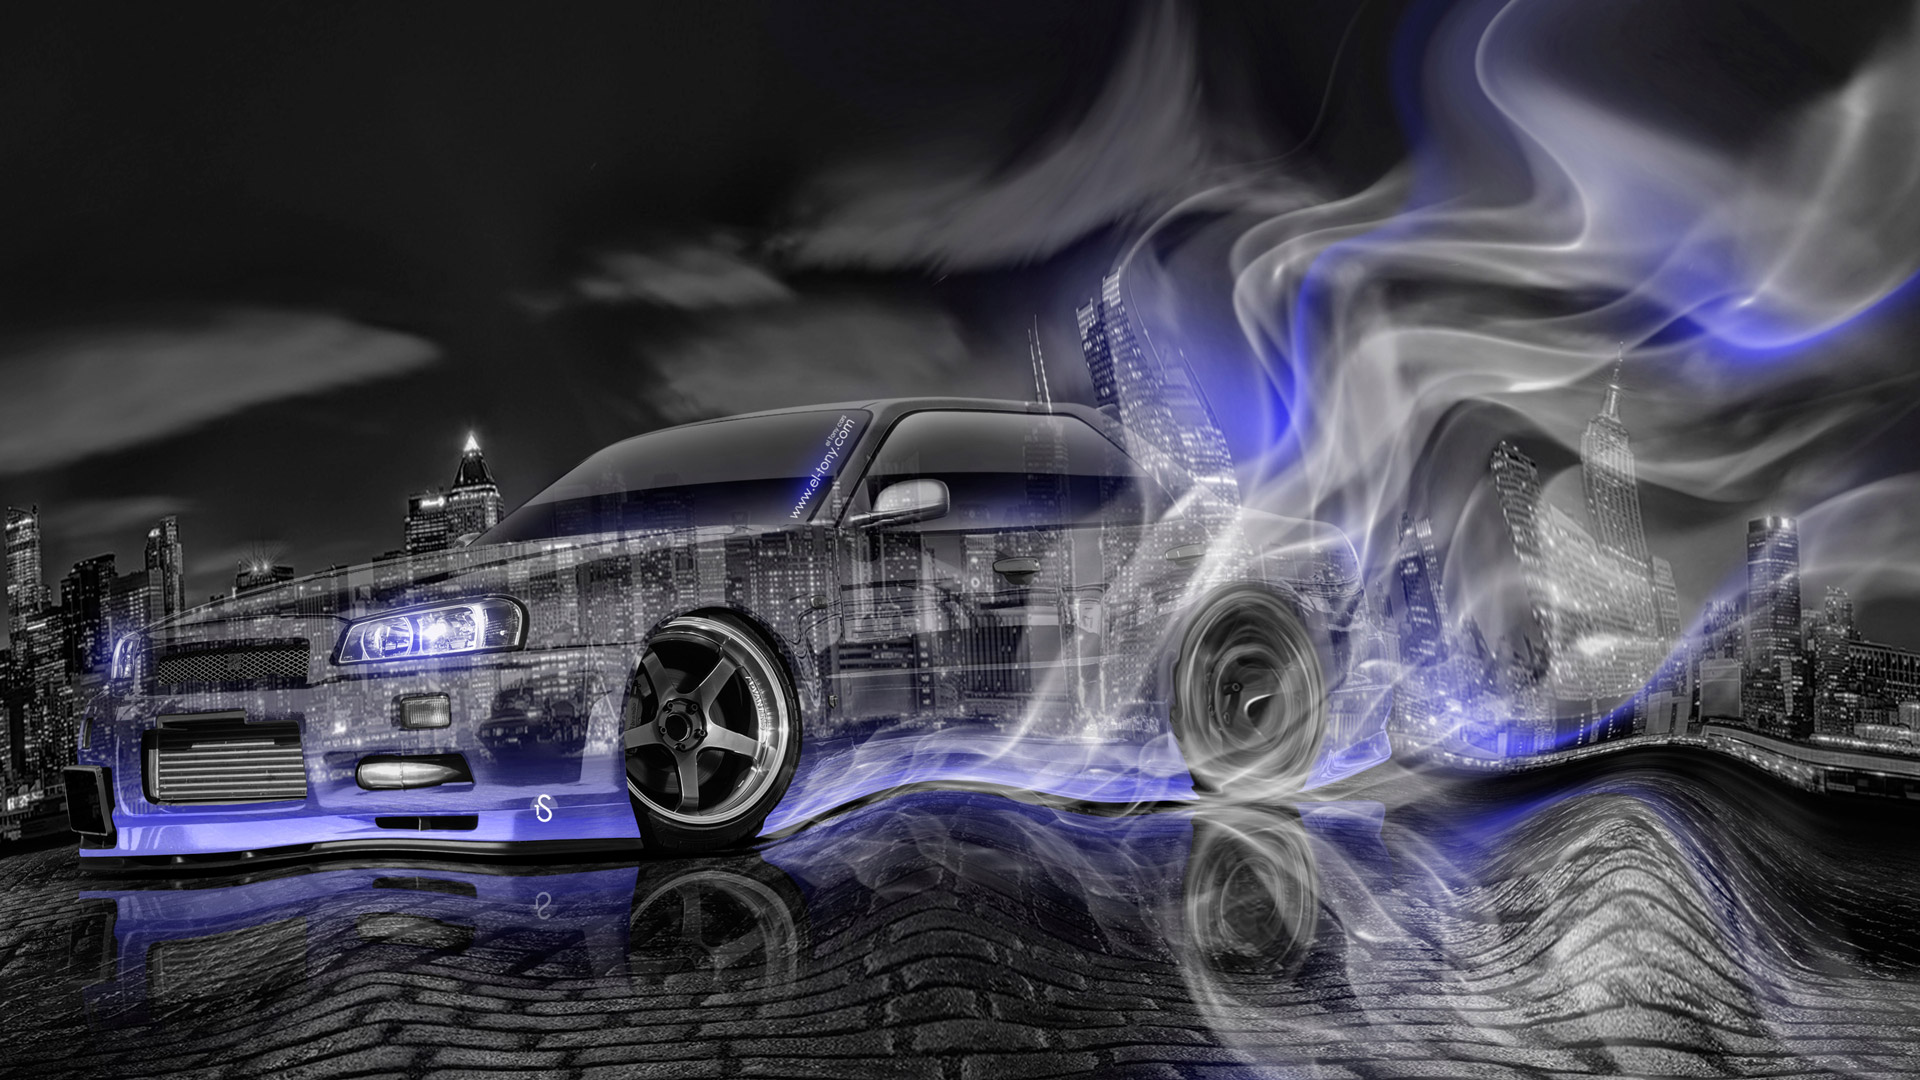 Nissan-Skyline-JDM-GT-Turbo-Sedan-R34-Tuning-Crystal-City-Smoke-Plastic-Drift-Car-2014-Violet-Neon-HD-Wallpapers-design-by-Tony-Kokhan-[www.el-tony.com]